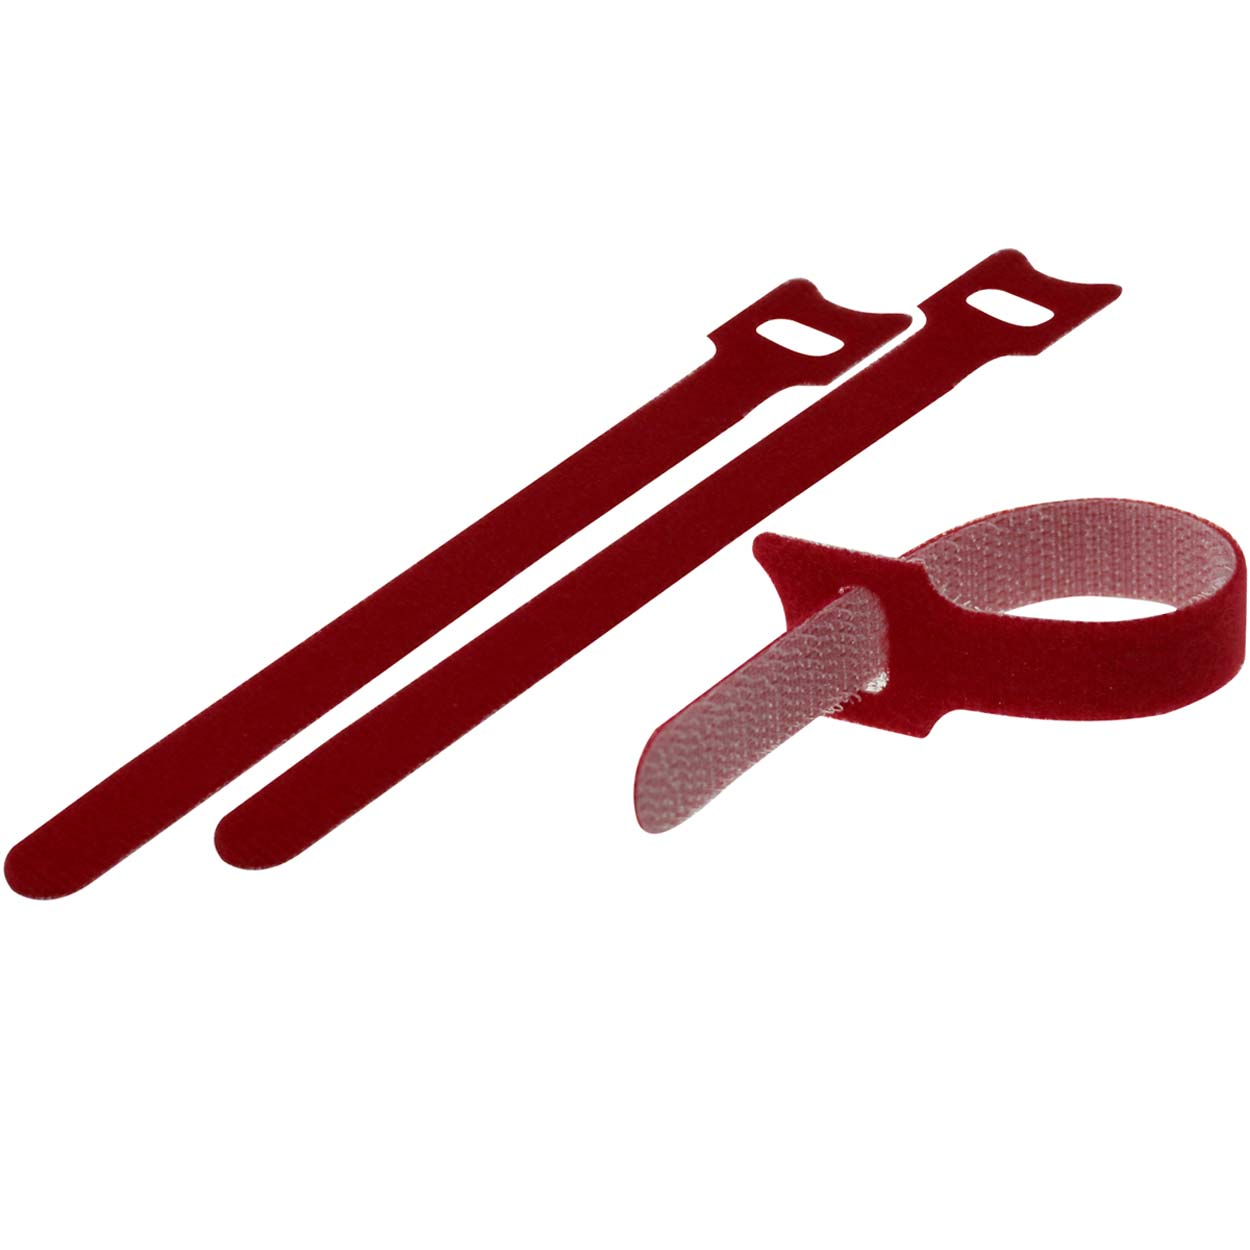 Velcro Cable Tie 0.48 x 13 inch (12 x 330mm), 10pcs/pack - Red